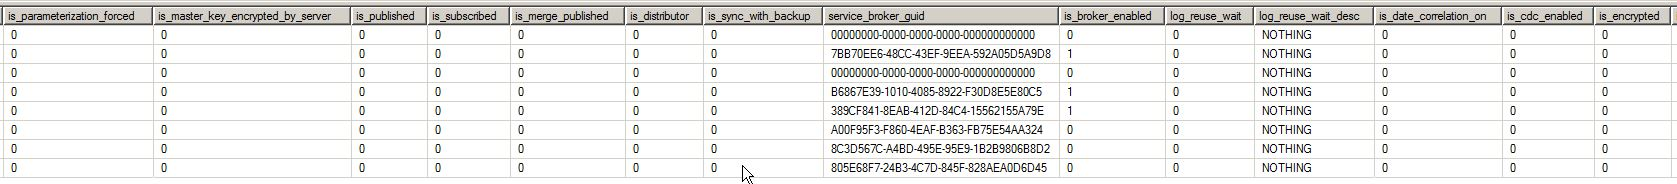 Agent Sys Databases